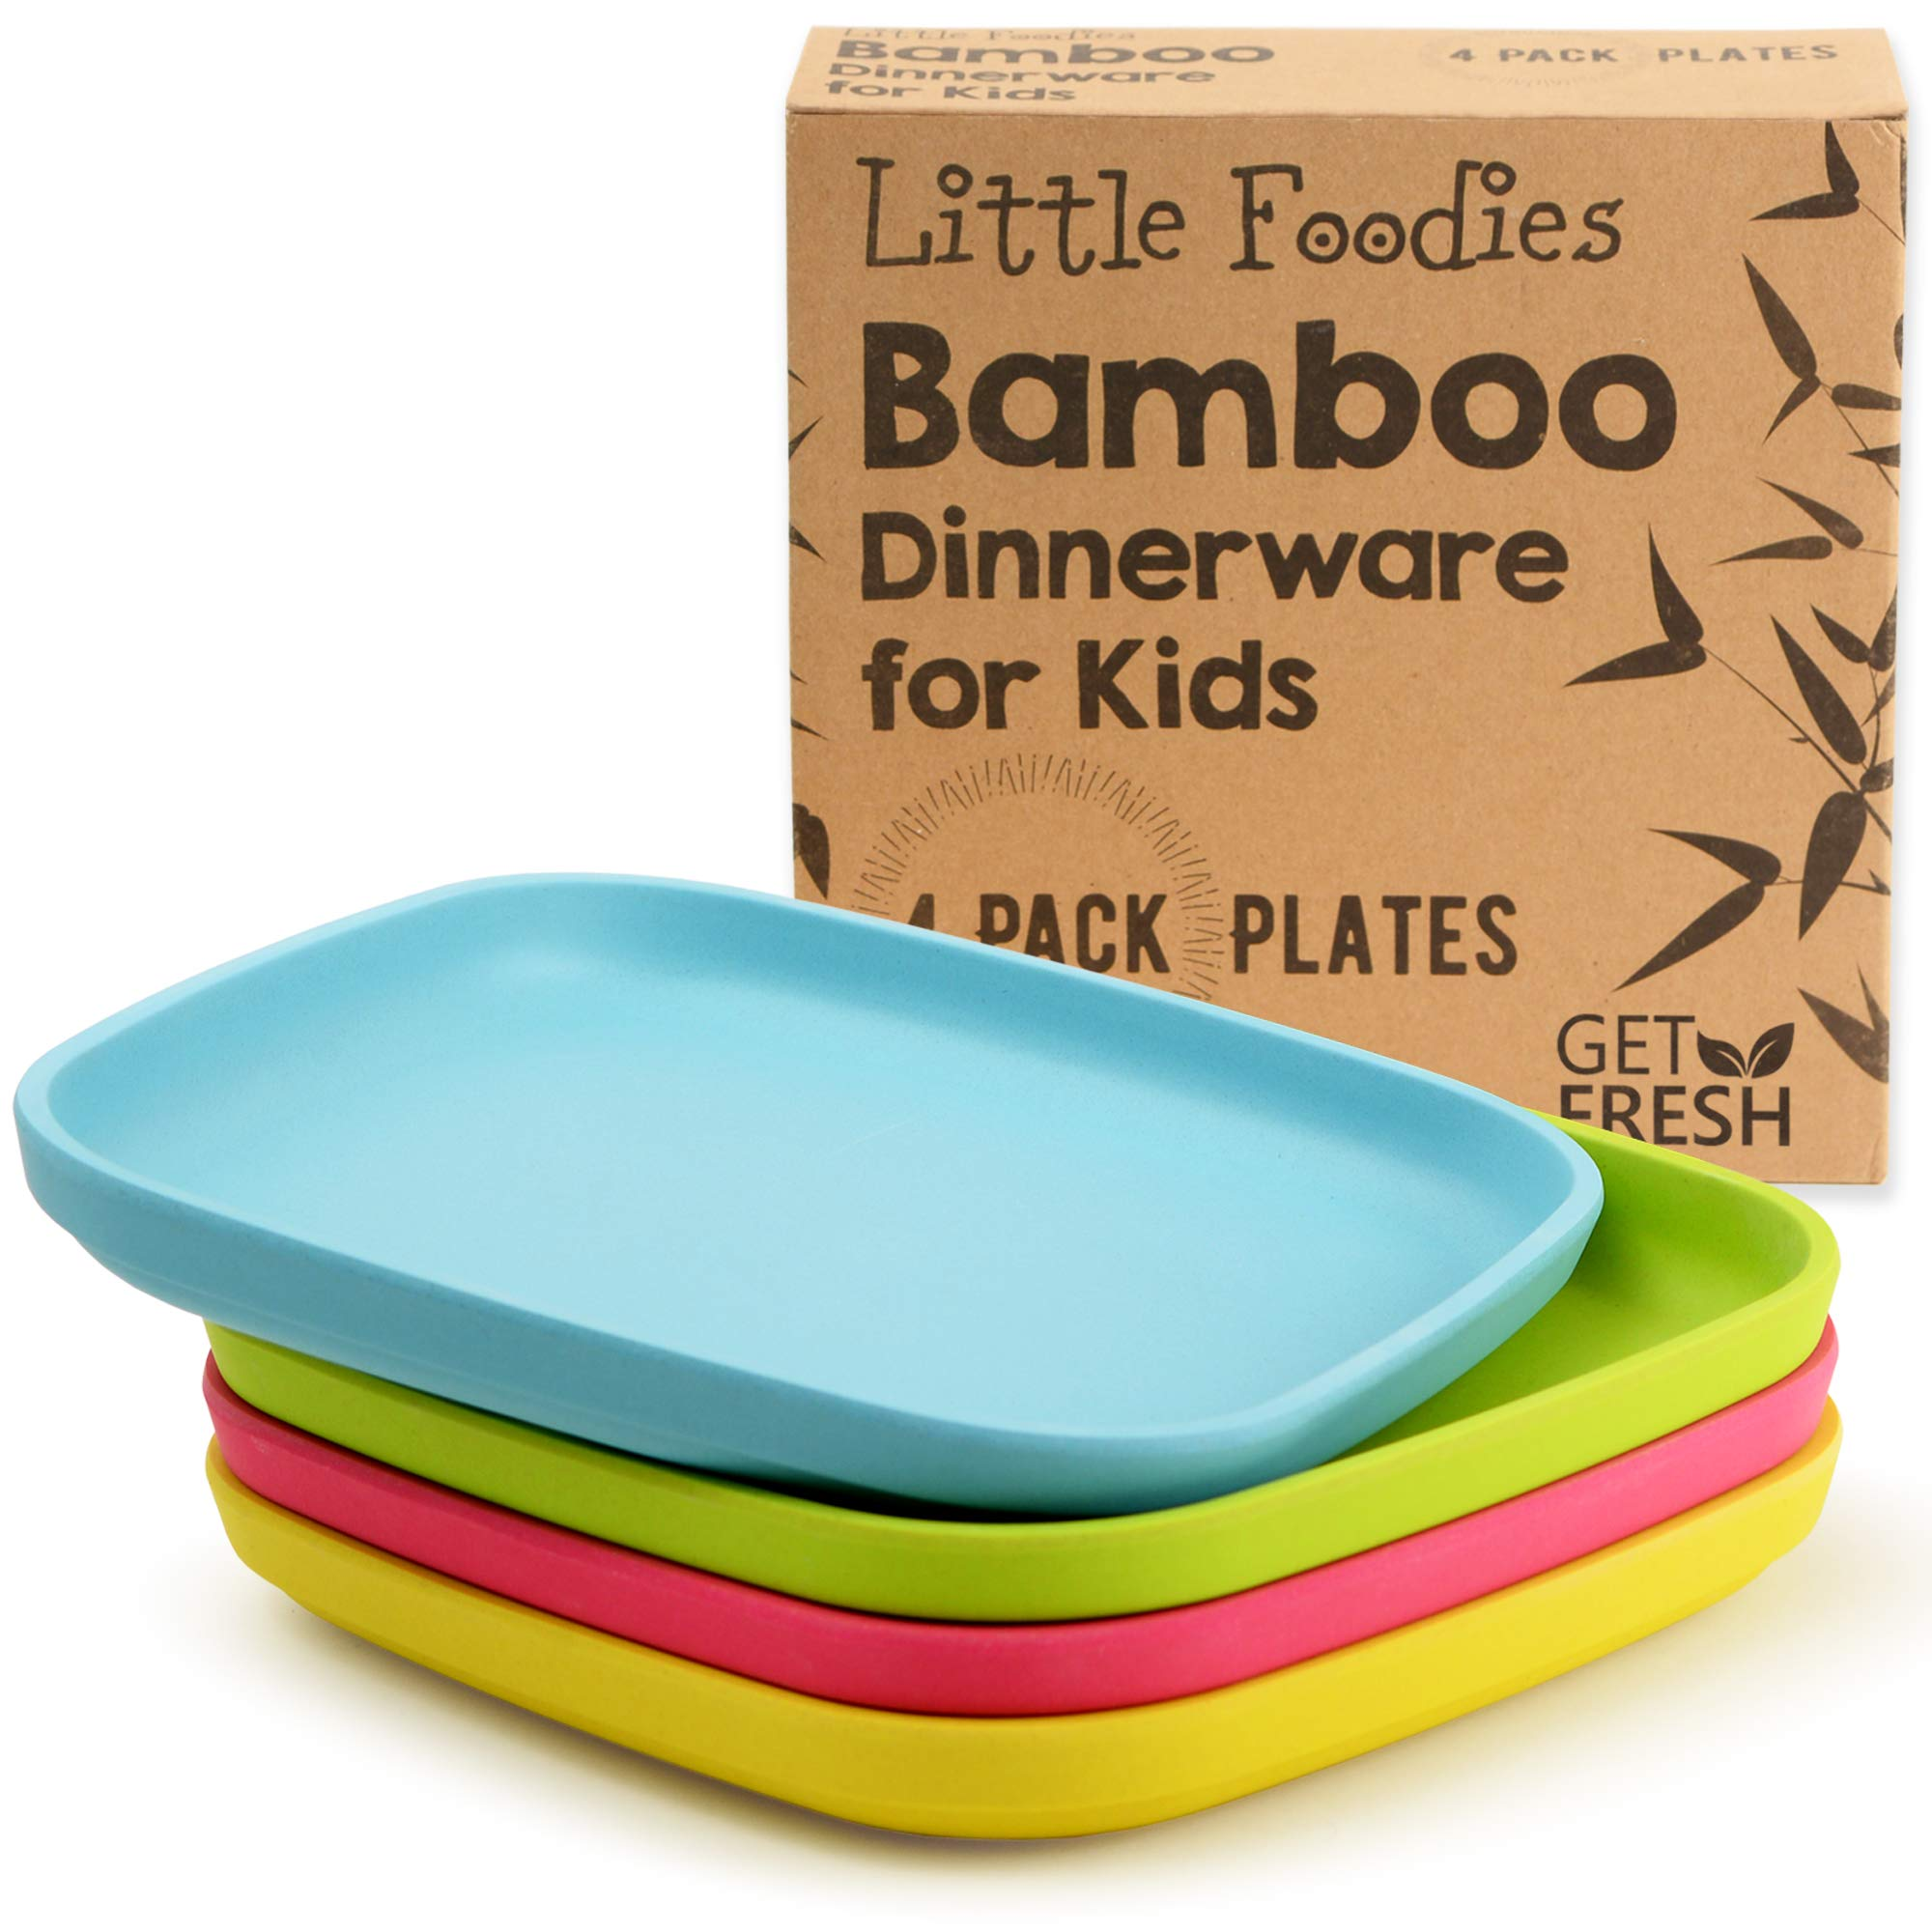 Bamboo Kids Plates, 4 Pack Set, Stackable Bamboo Dinnerware for Kids, Bamboo Fiber Kids Plates Set, Dinner Dish Set for Kids and Toddlers, BPA-free, Dishwasher Safe and Stackable by GET FRESH